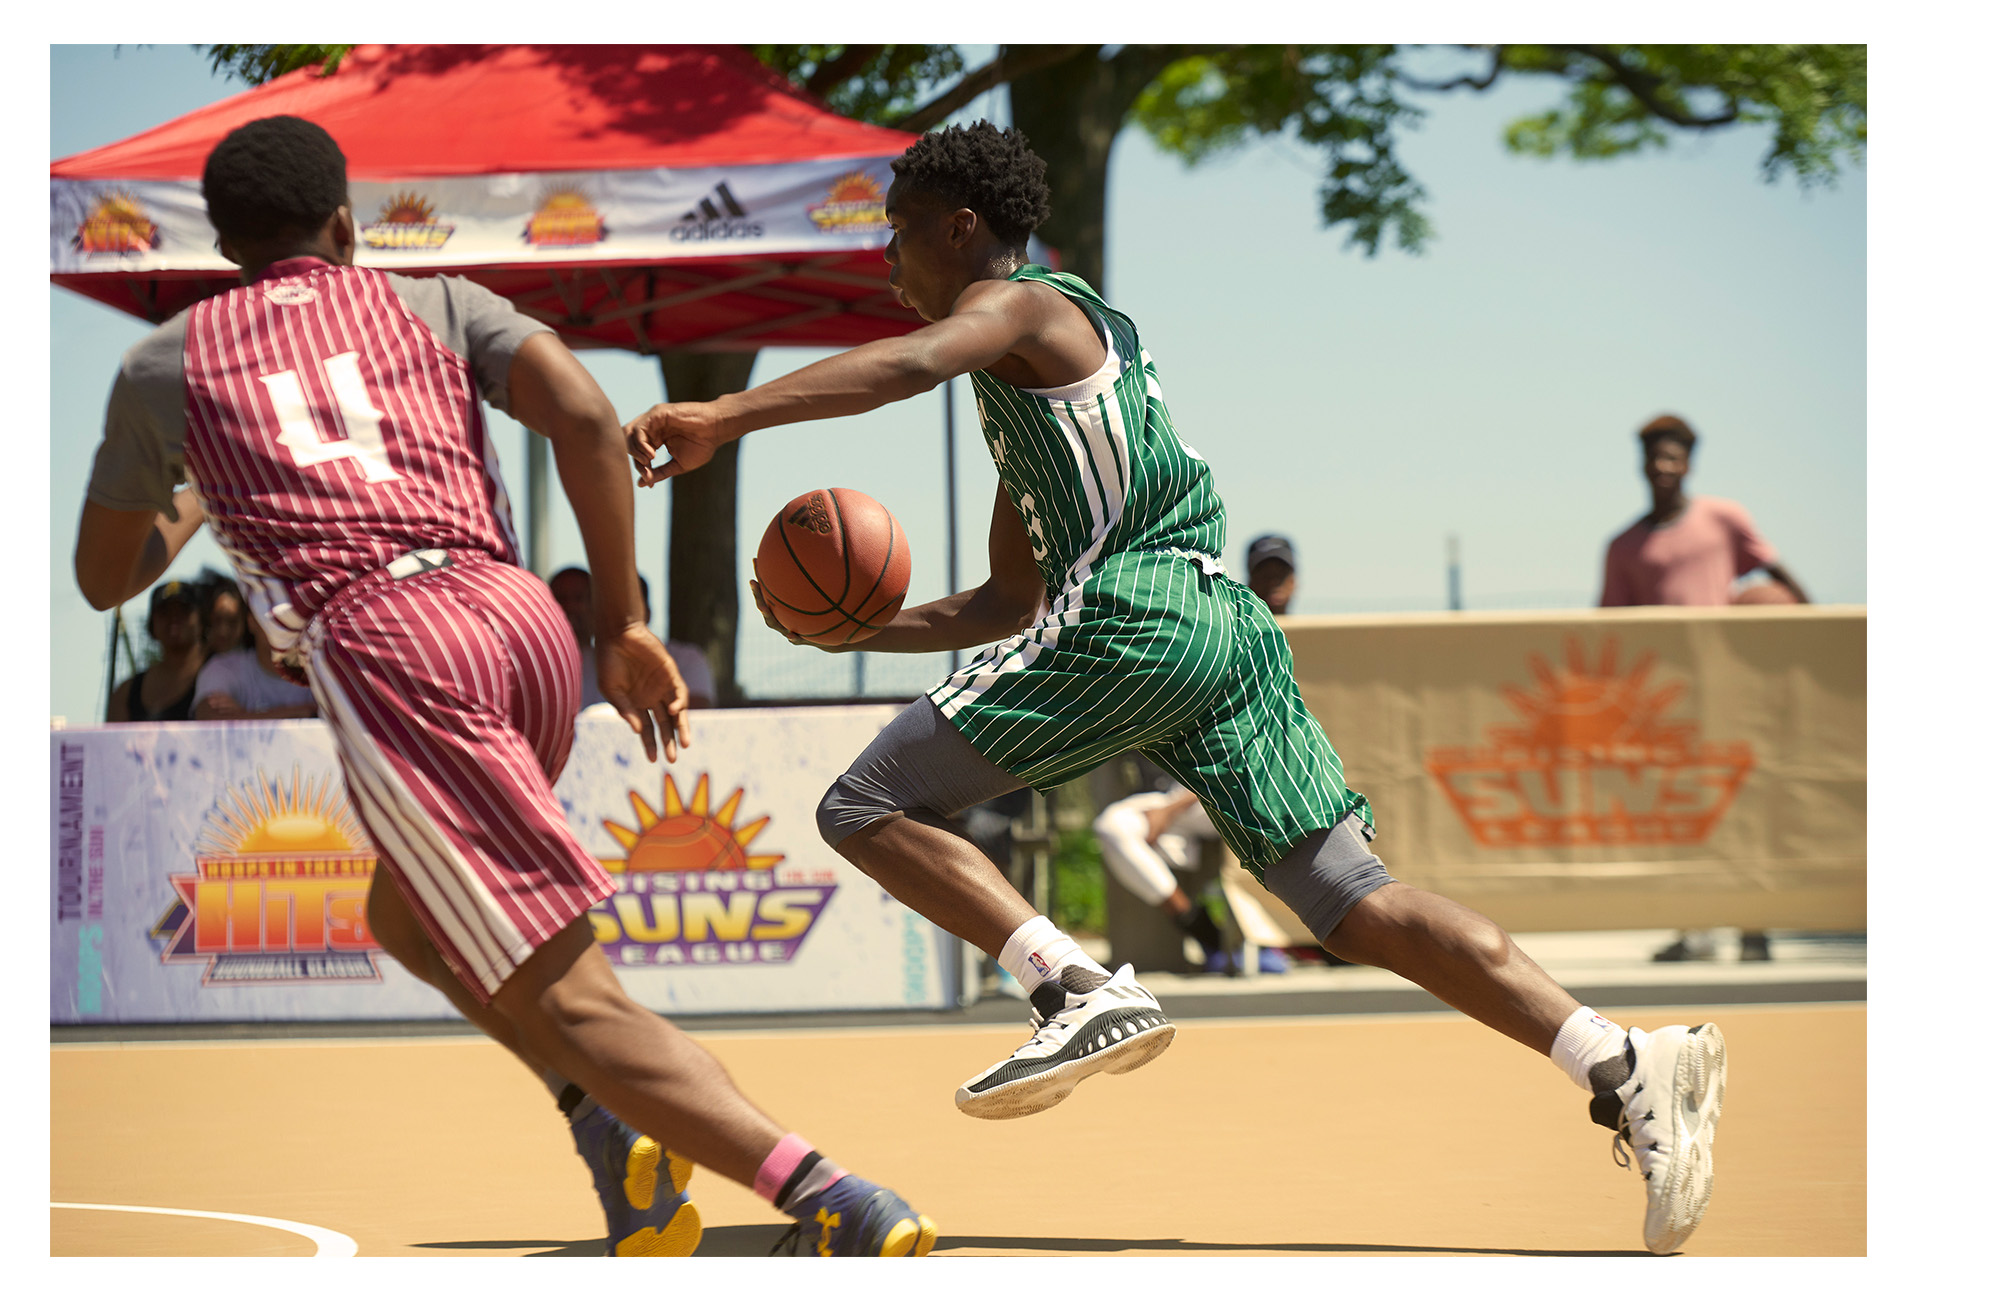 Hoops in the Sun - 3 of 7